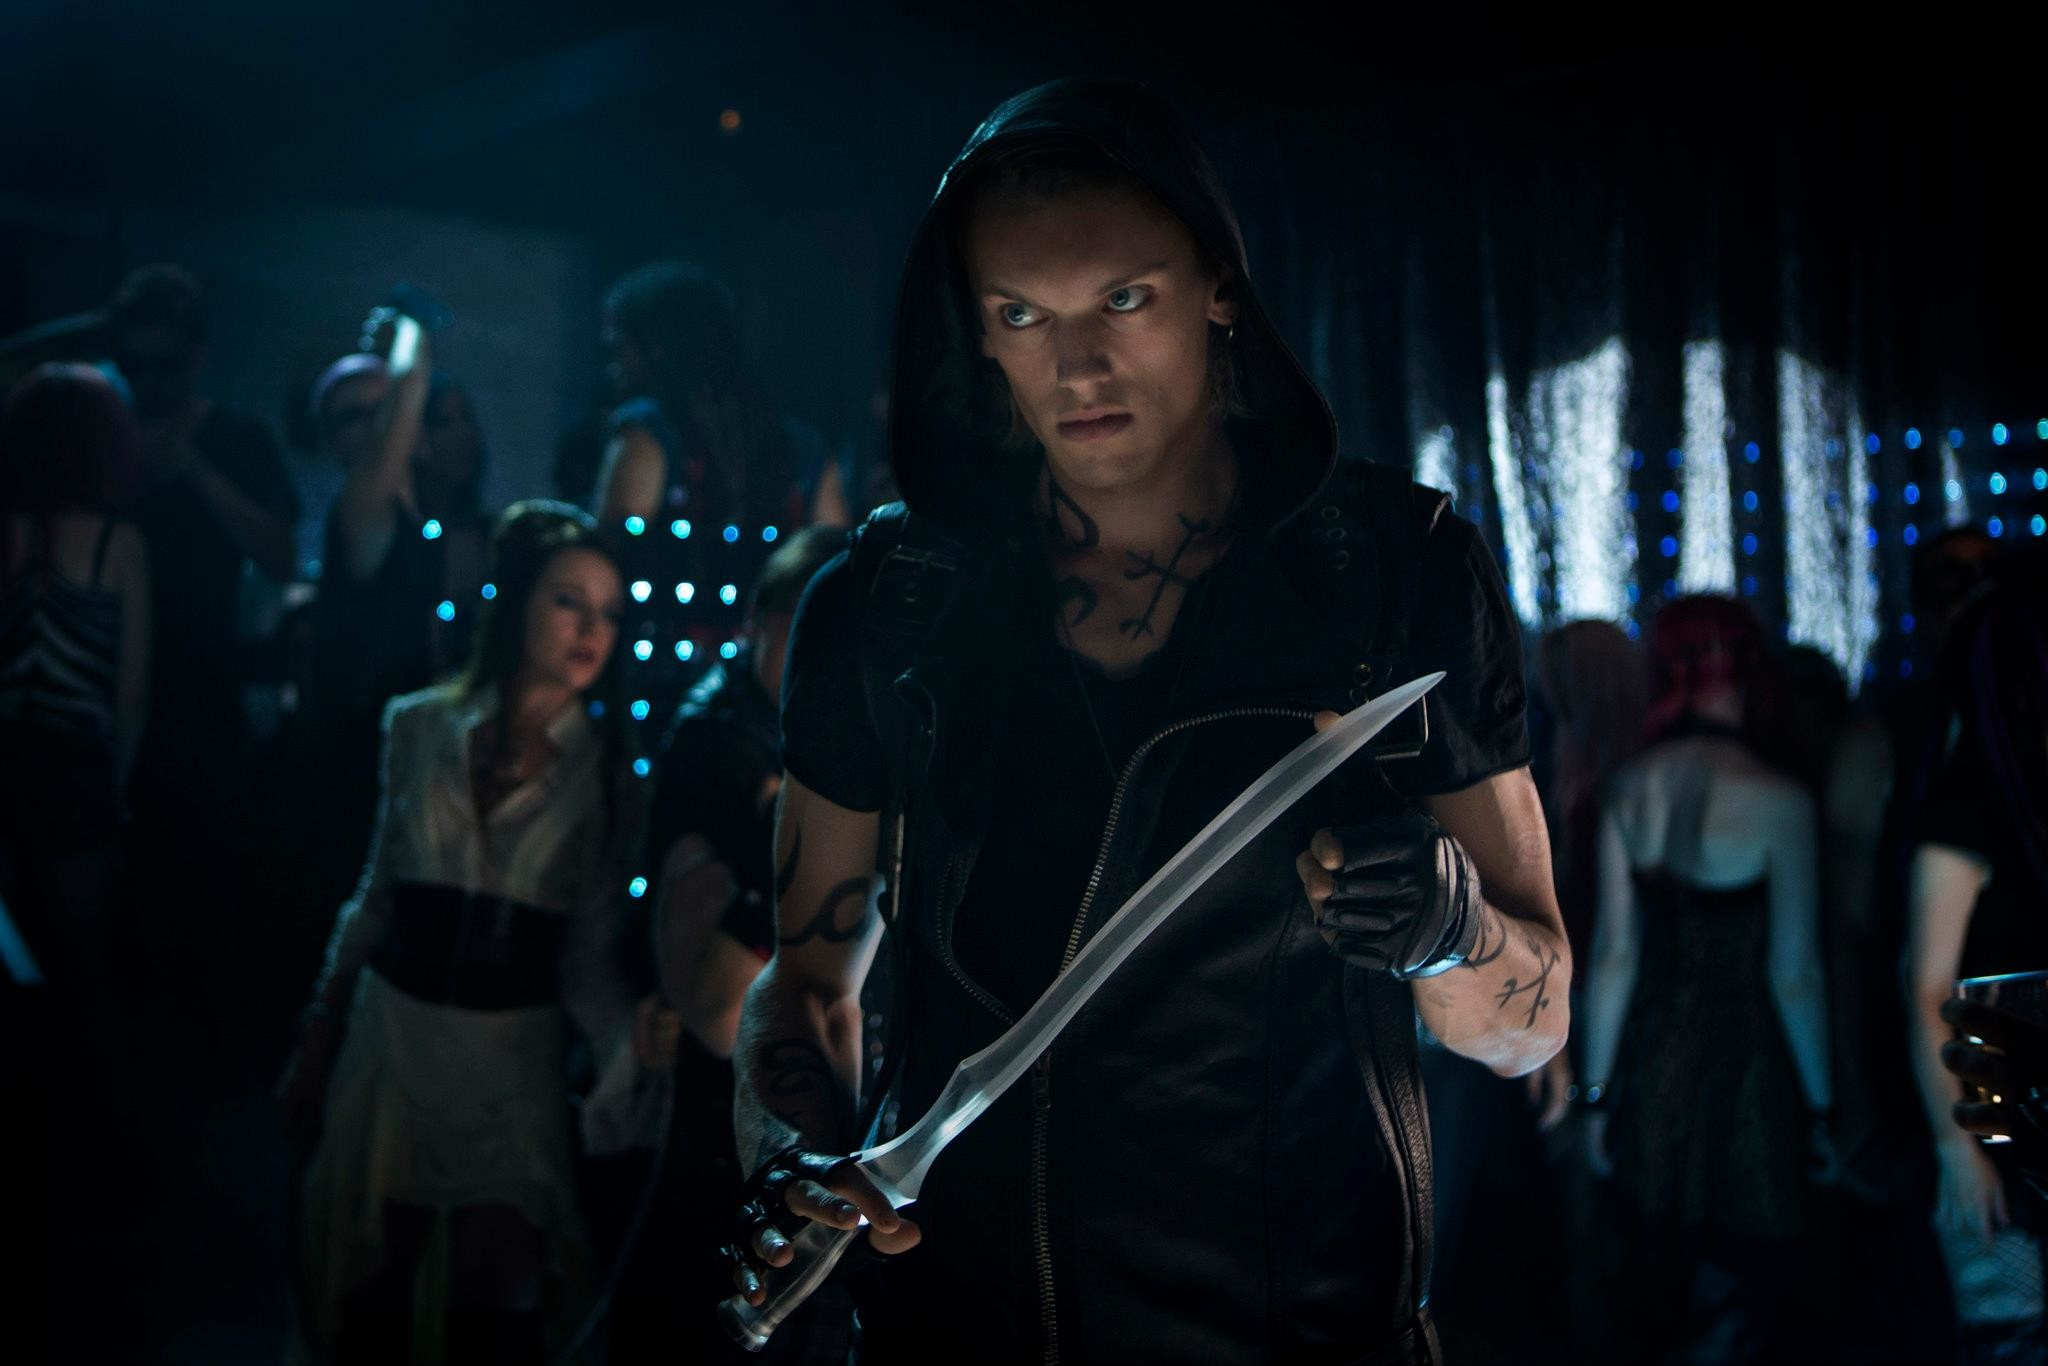 2048x1366 the-mortal-instruments-city-of-bones-jamie-campbell-